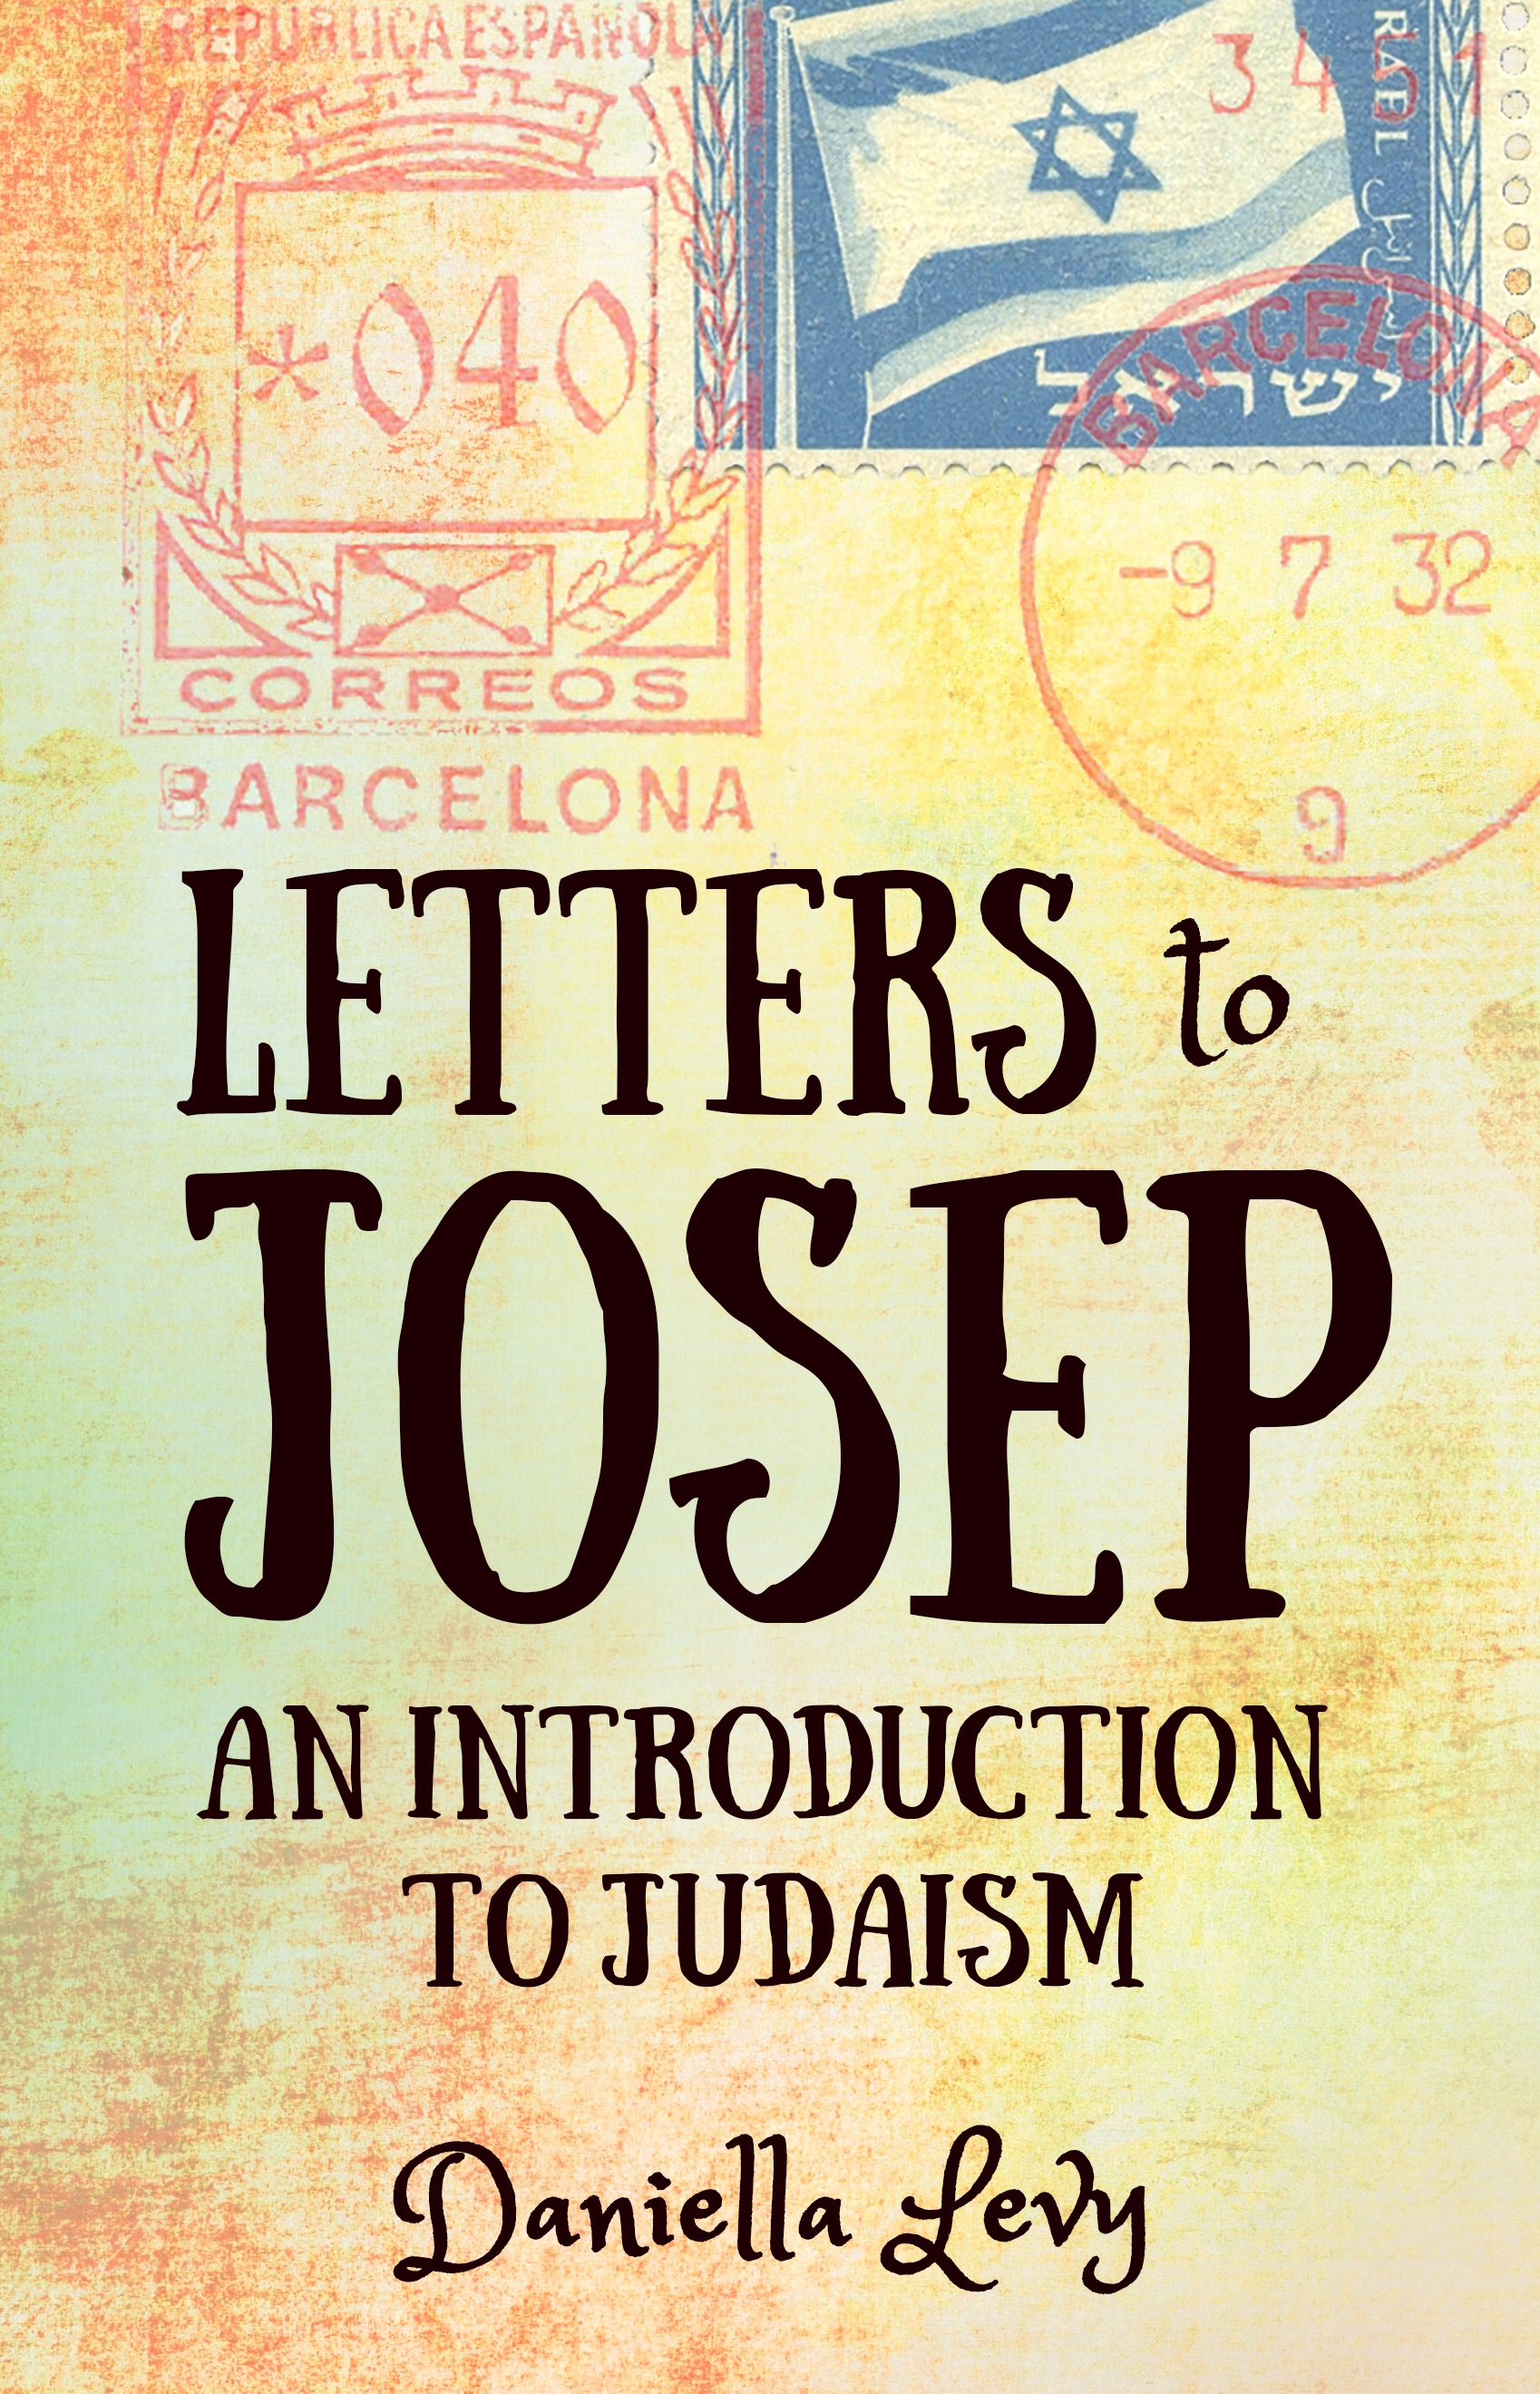 Book archives letters to josep spiritdancerdesigns Gallery